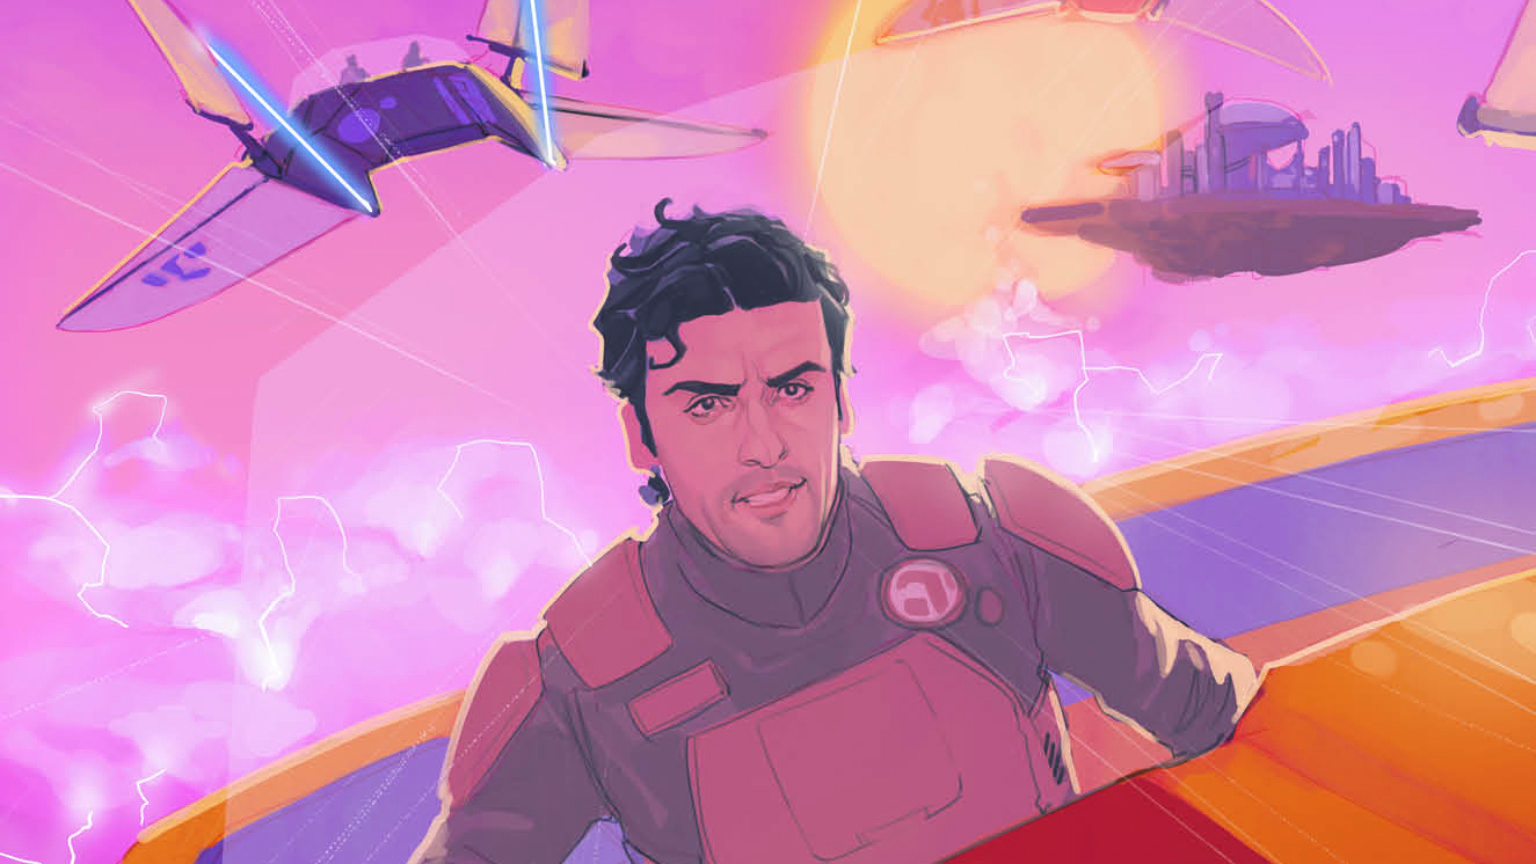 'Poe Dameron' #7: Disappointing Filler